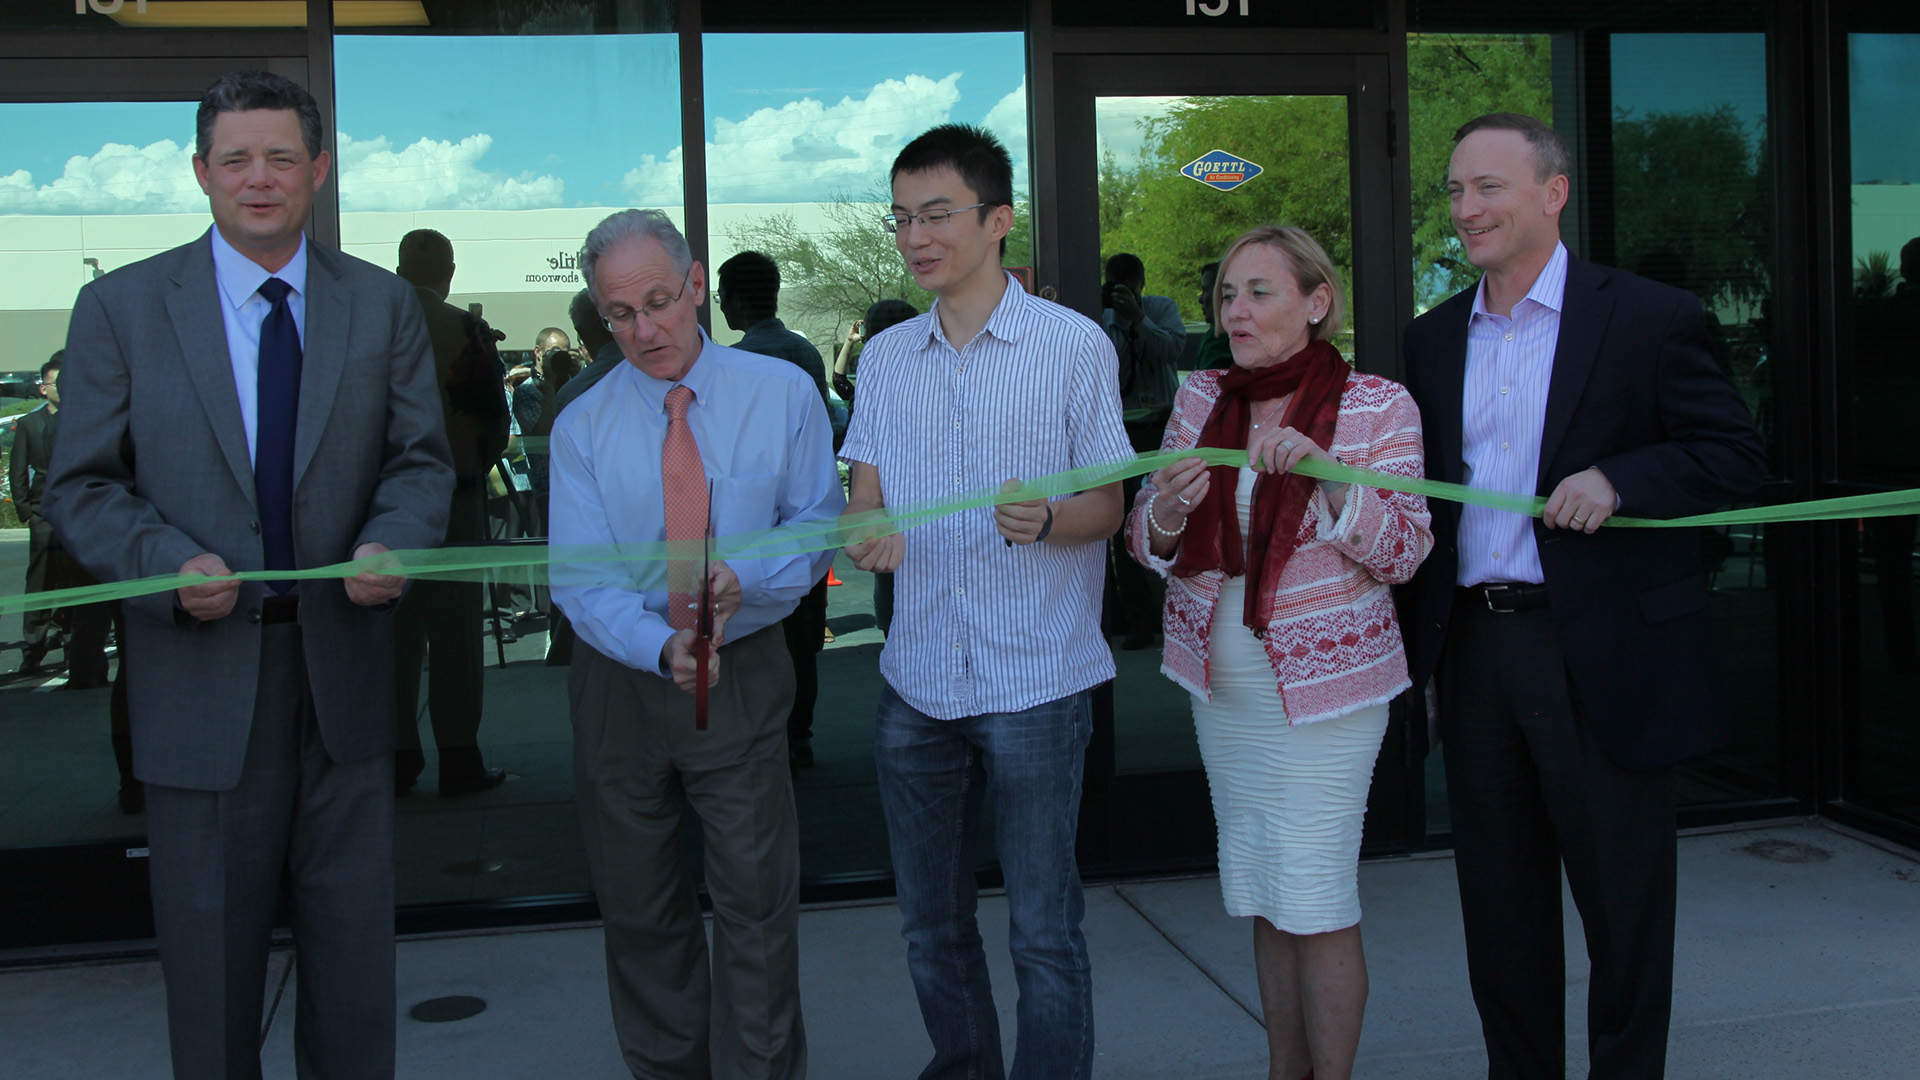 From left, Sun Corridor CEO Joe Snell, Tucson Mayor Jonathan Rothschild, TuSimple CTO Xiaodi Hou, Pima County Supervisor Sharon Bronson and Sun Corridor Board Chair and UNS Energy CEO Dave Hutchens cut the ribbon at a media event introducing TuSimple's Tucson office.